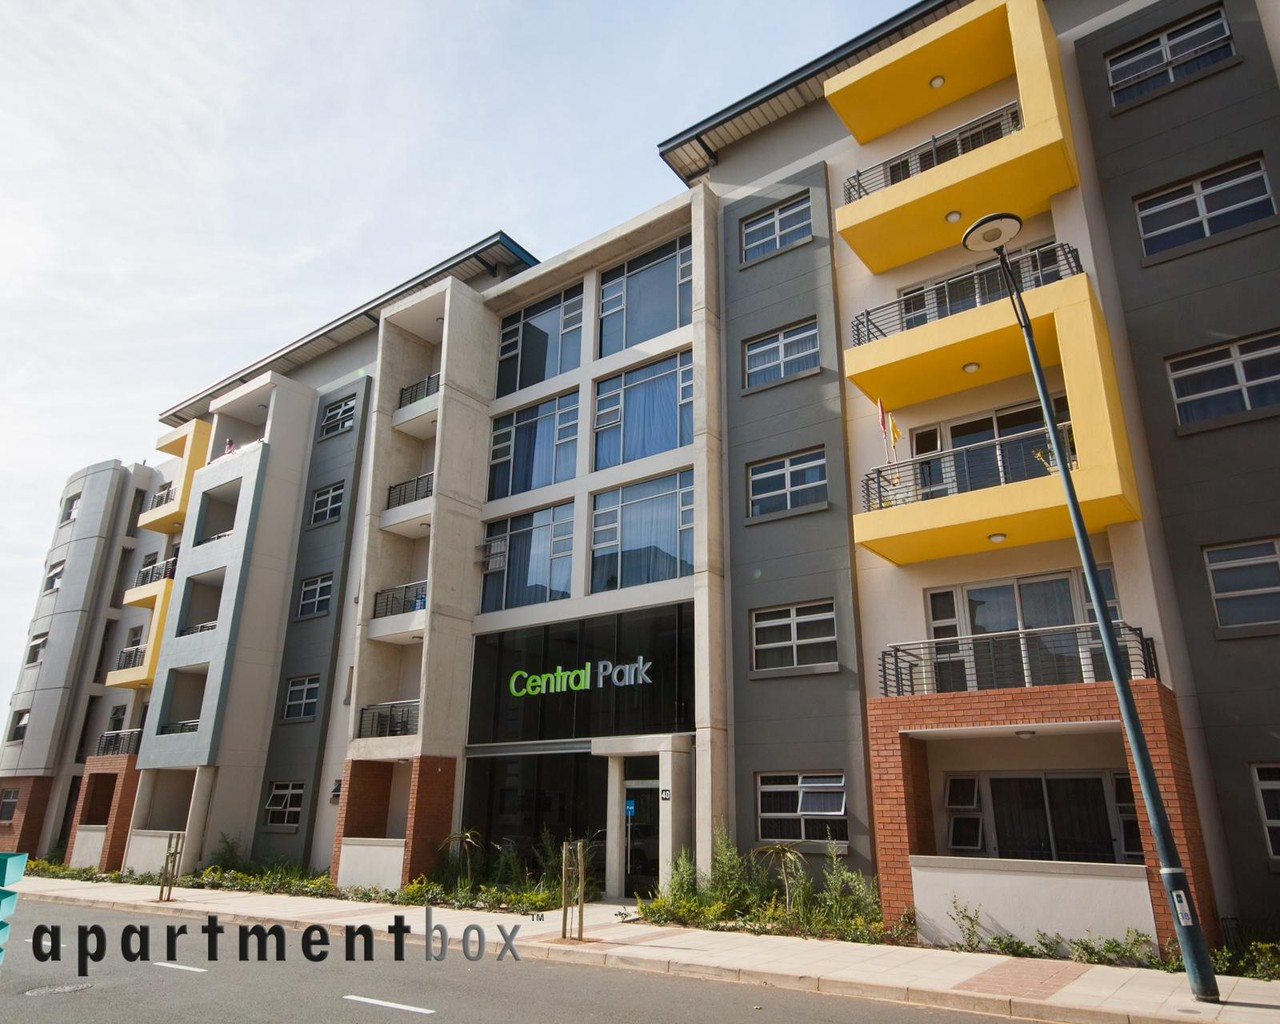 9 Bedroom Apartment To Let in Umhlanga Ridge | Apartmentbox